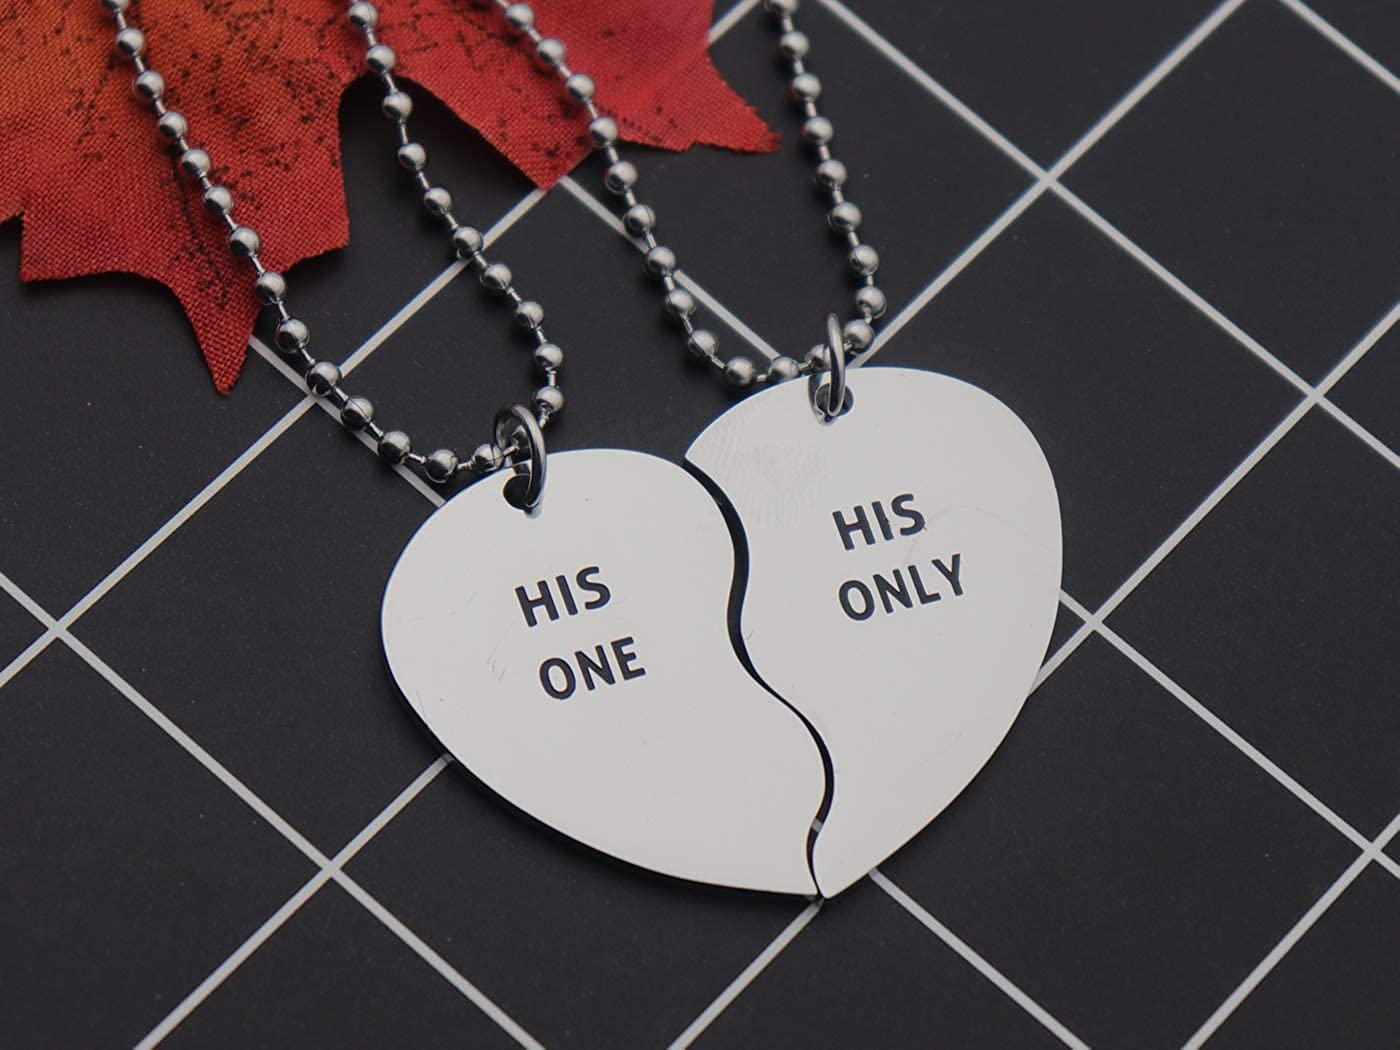 142cf37a28 Amazon.com: Eilygen Gay Couple Gifts Stainless Steel Heart Charm Necklace  Set LGBT Necklace Gay Necklace (His One His Only): Jewelry